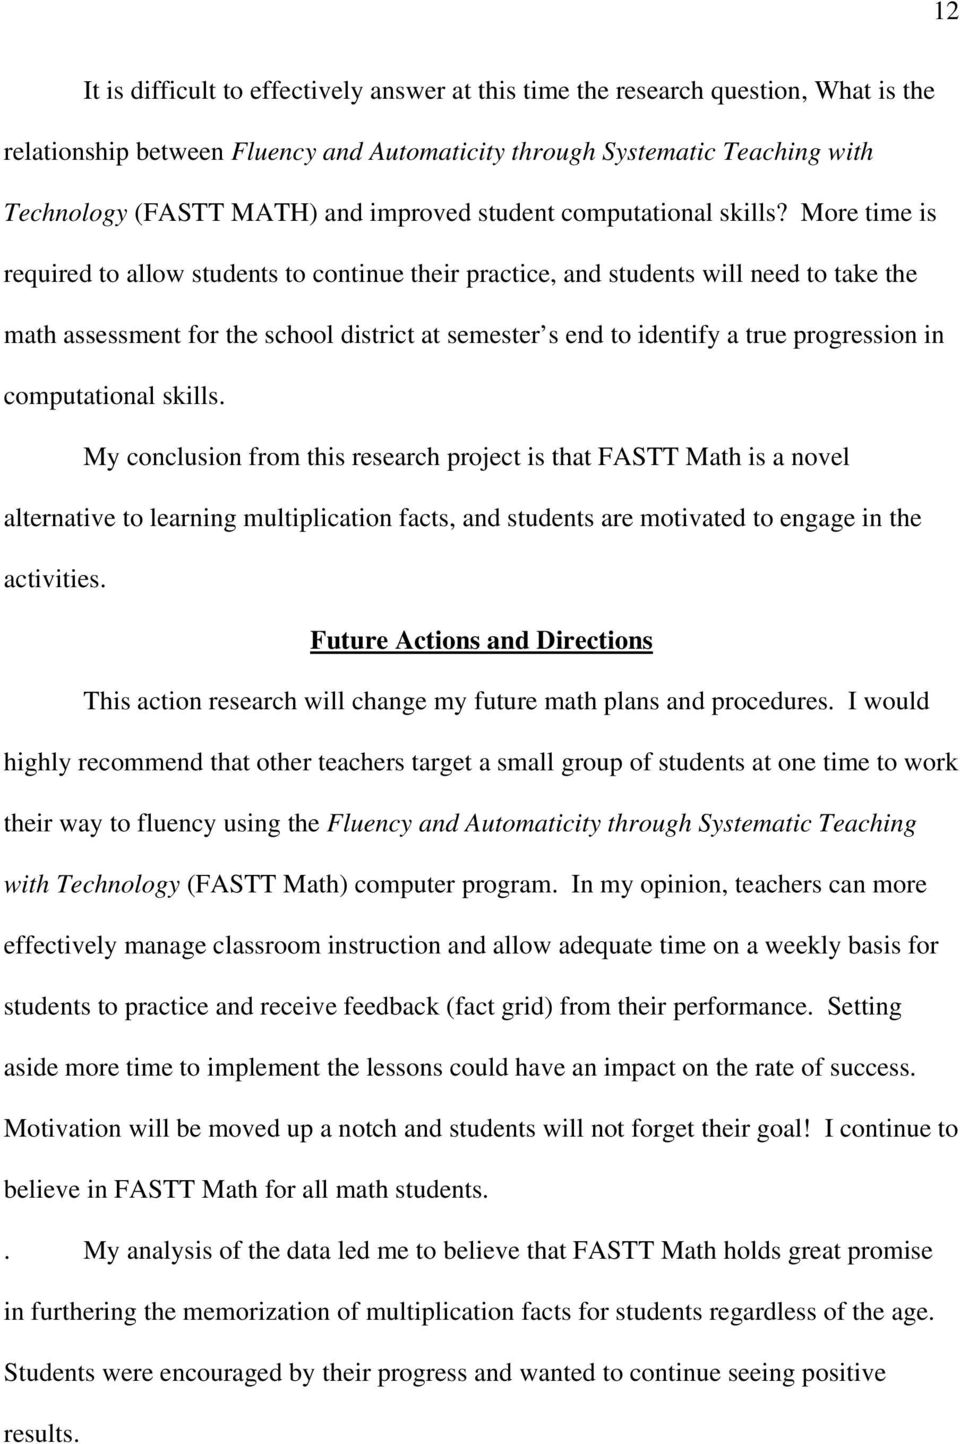 What Is The Relationship Between Fluency And Automaticity Through